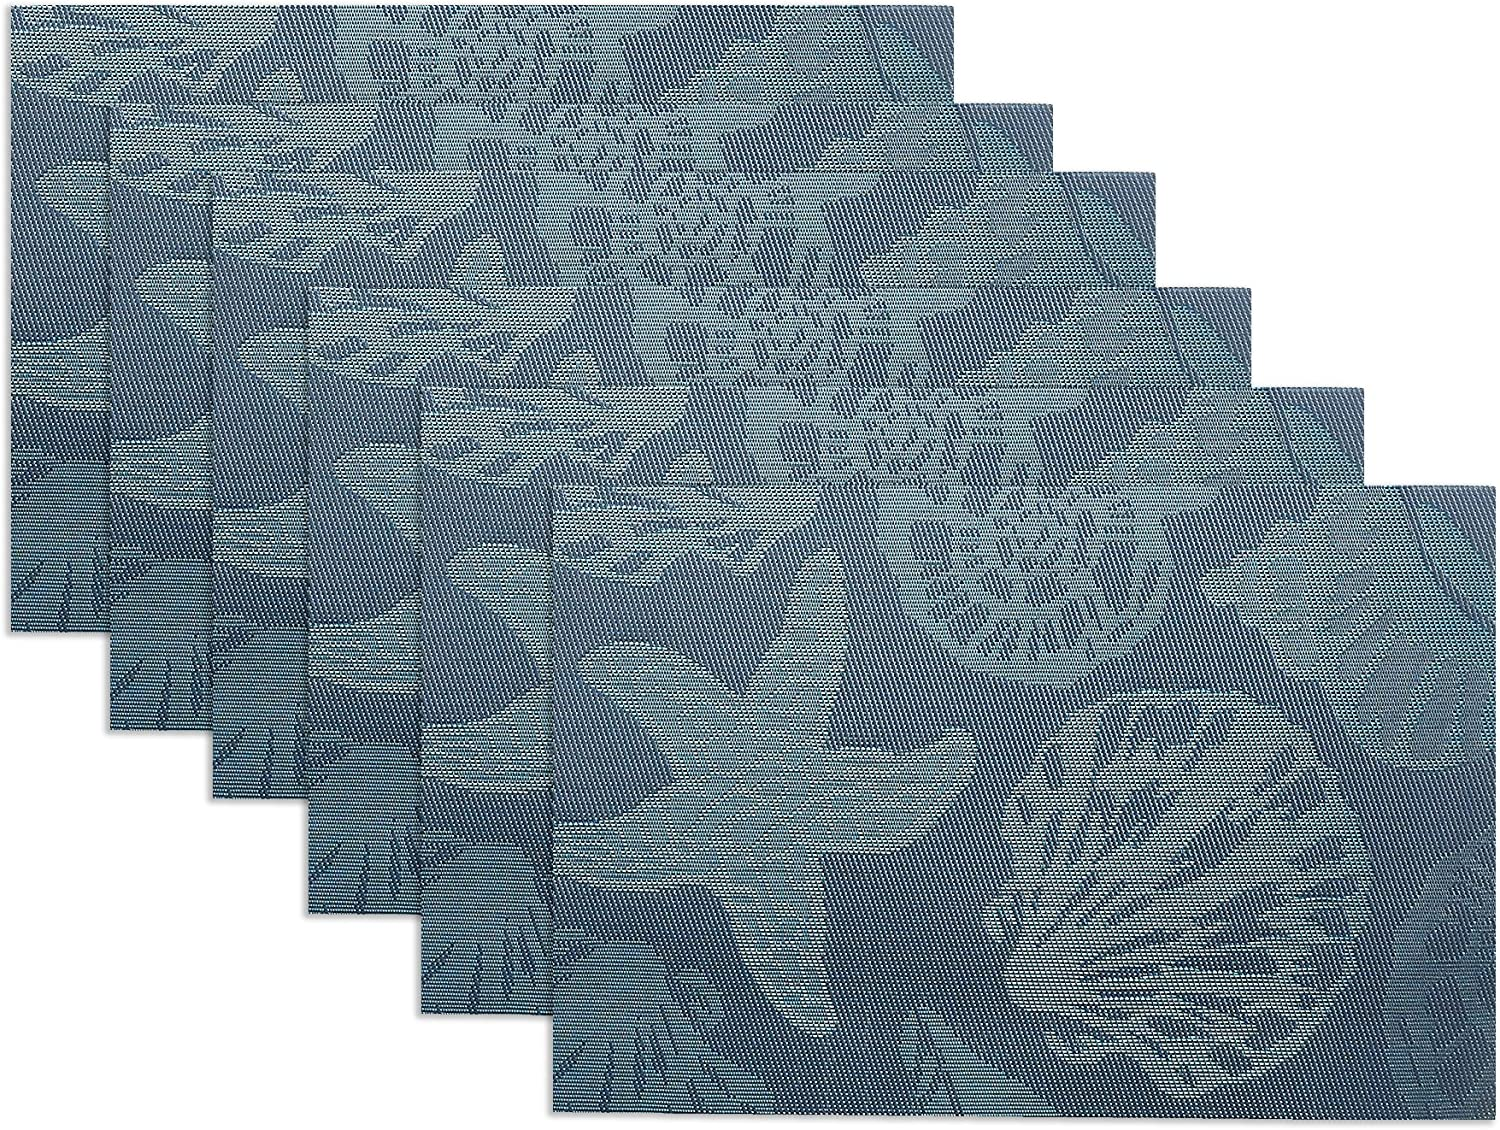 Doupoo Sea Place Mats Beach Theme, Heat Resistant Placemats for Dining Table Mats Set of 6 - Nautical Blue Reversible Placemats Starfish Seashell Conch